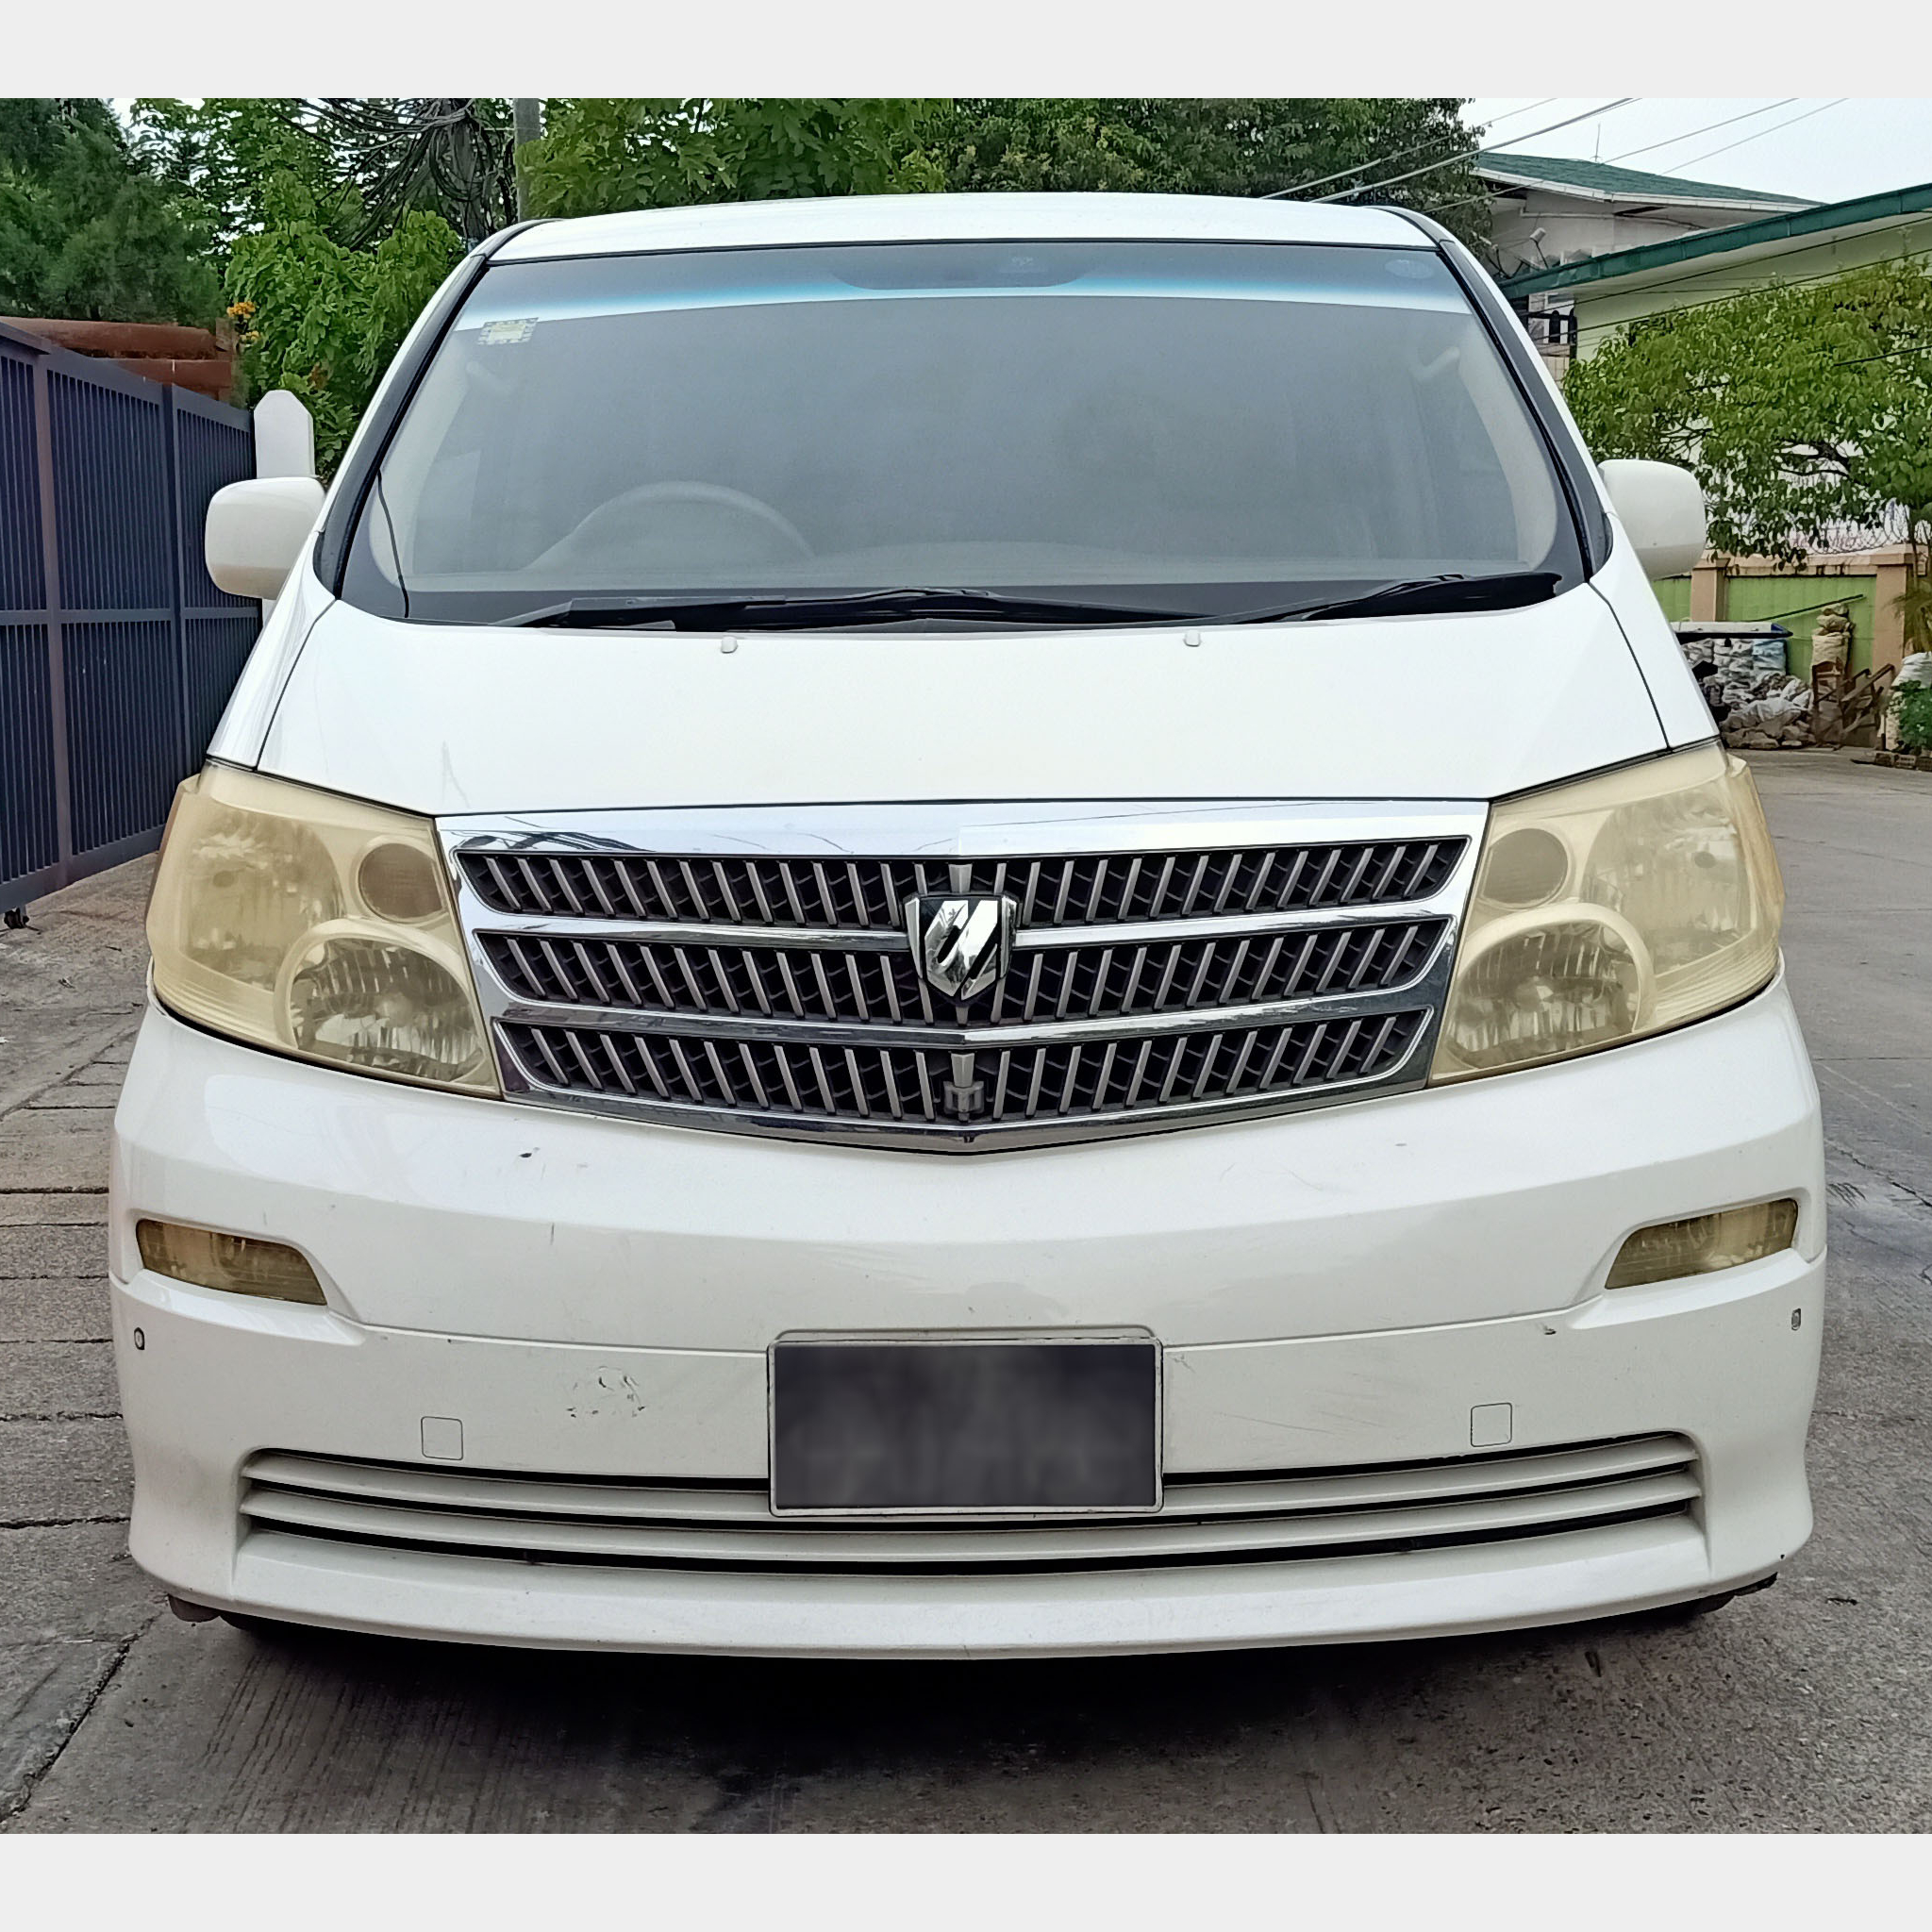 Toyota Alphard 2002  Image, ဗန် classified, Myanmar marketplace, Myanmarkt